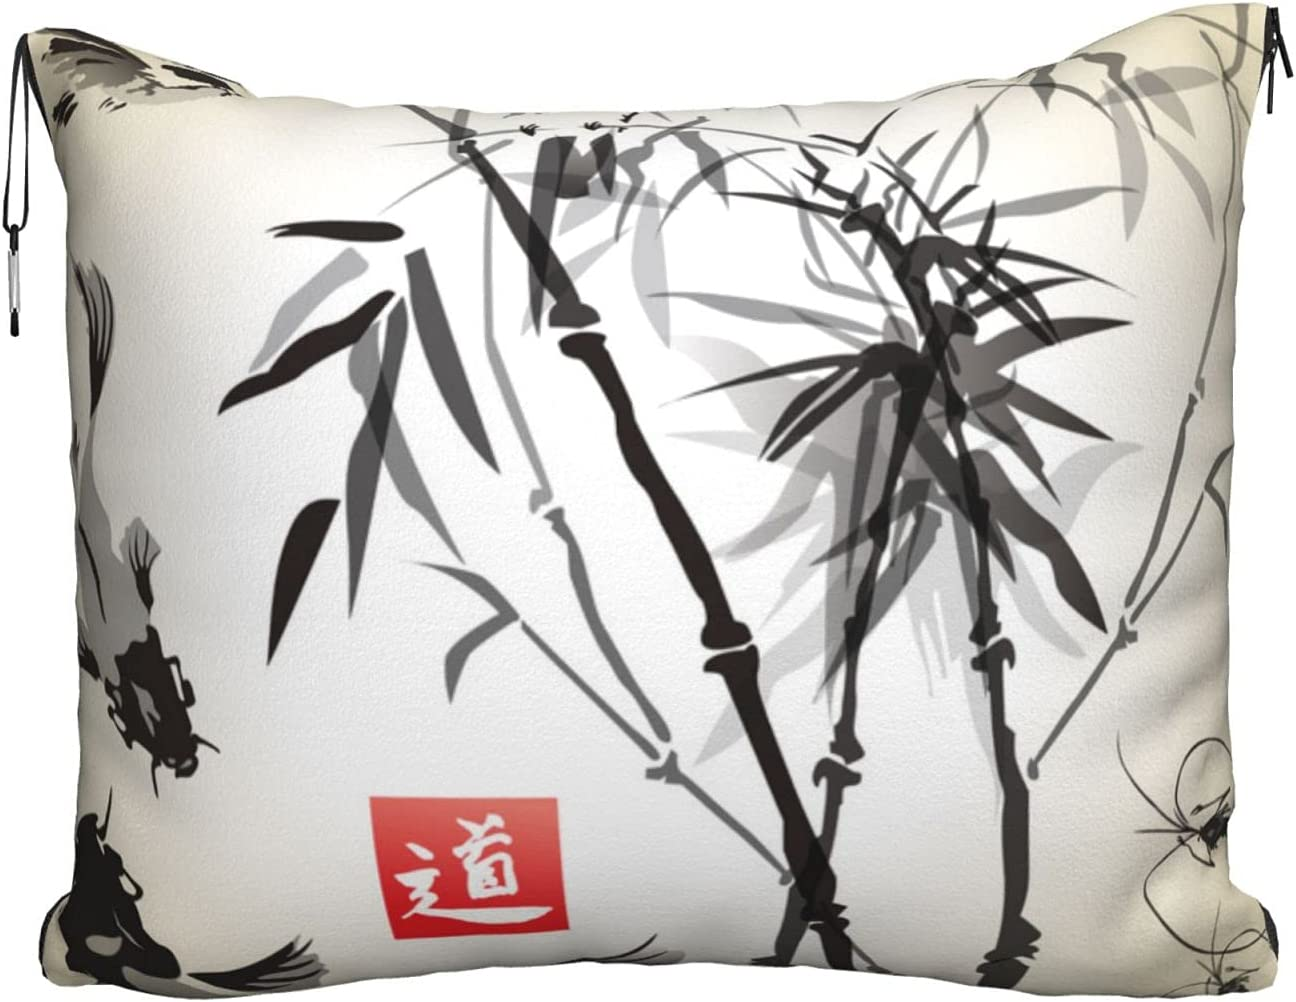 Mescchskfish Bird and New popularity Bamboo Leaves Print Pillow Travel Popular products Painting